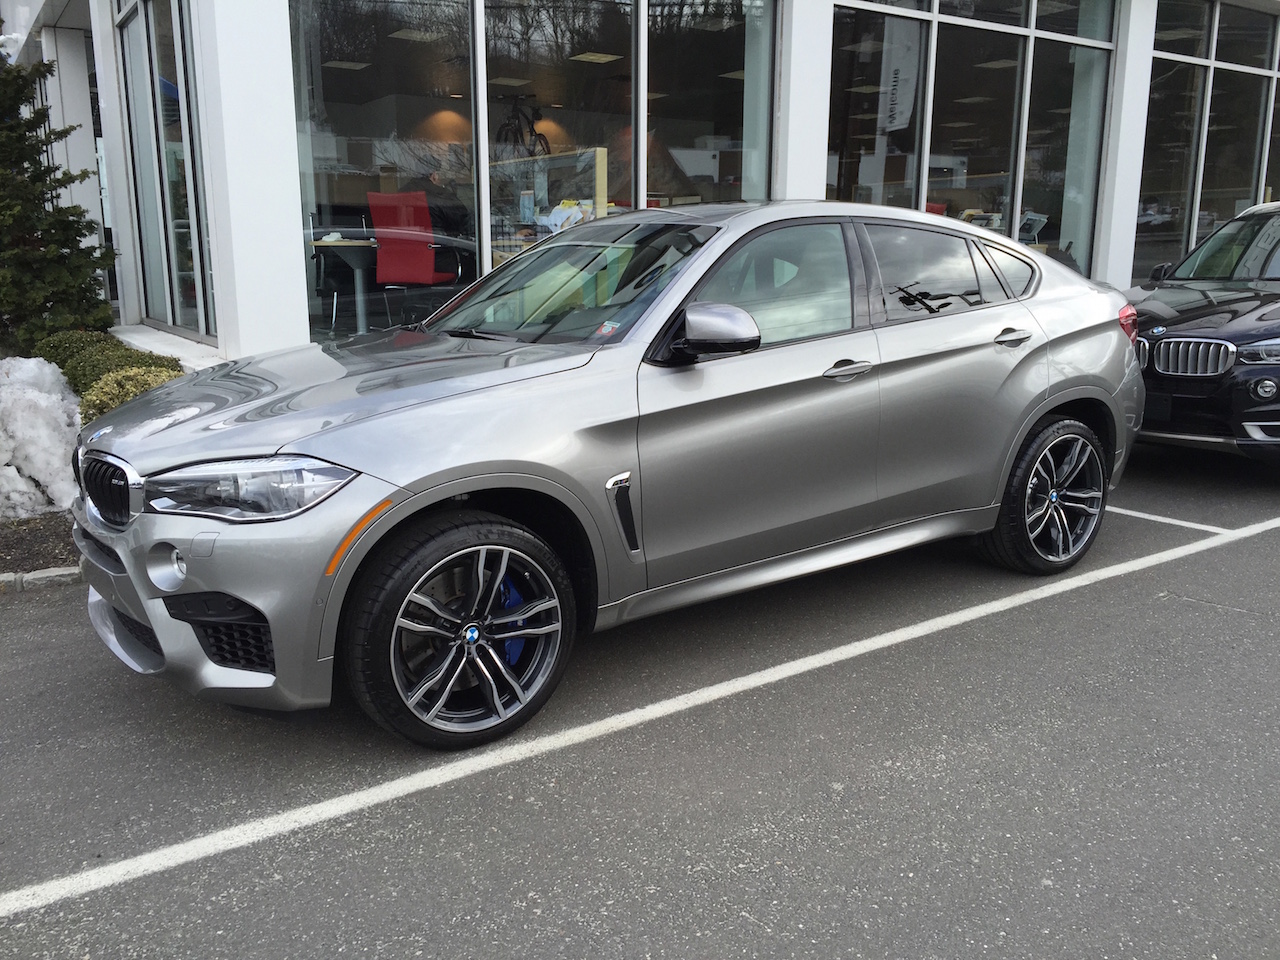 Delivered X6m Donington Grey 2015 Pics To Chrome Or Not To Chrome